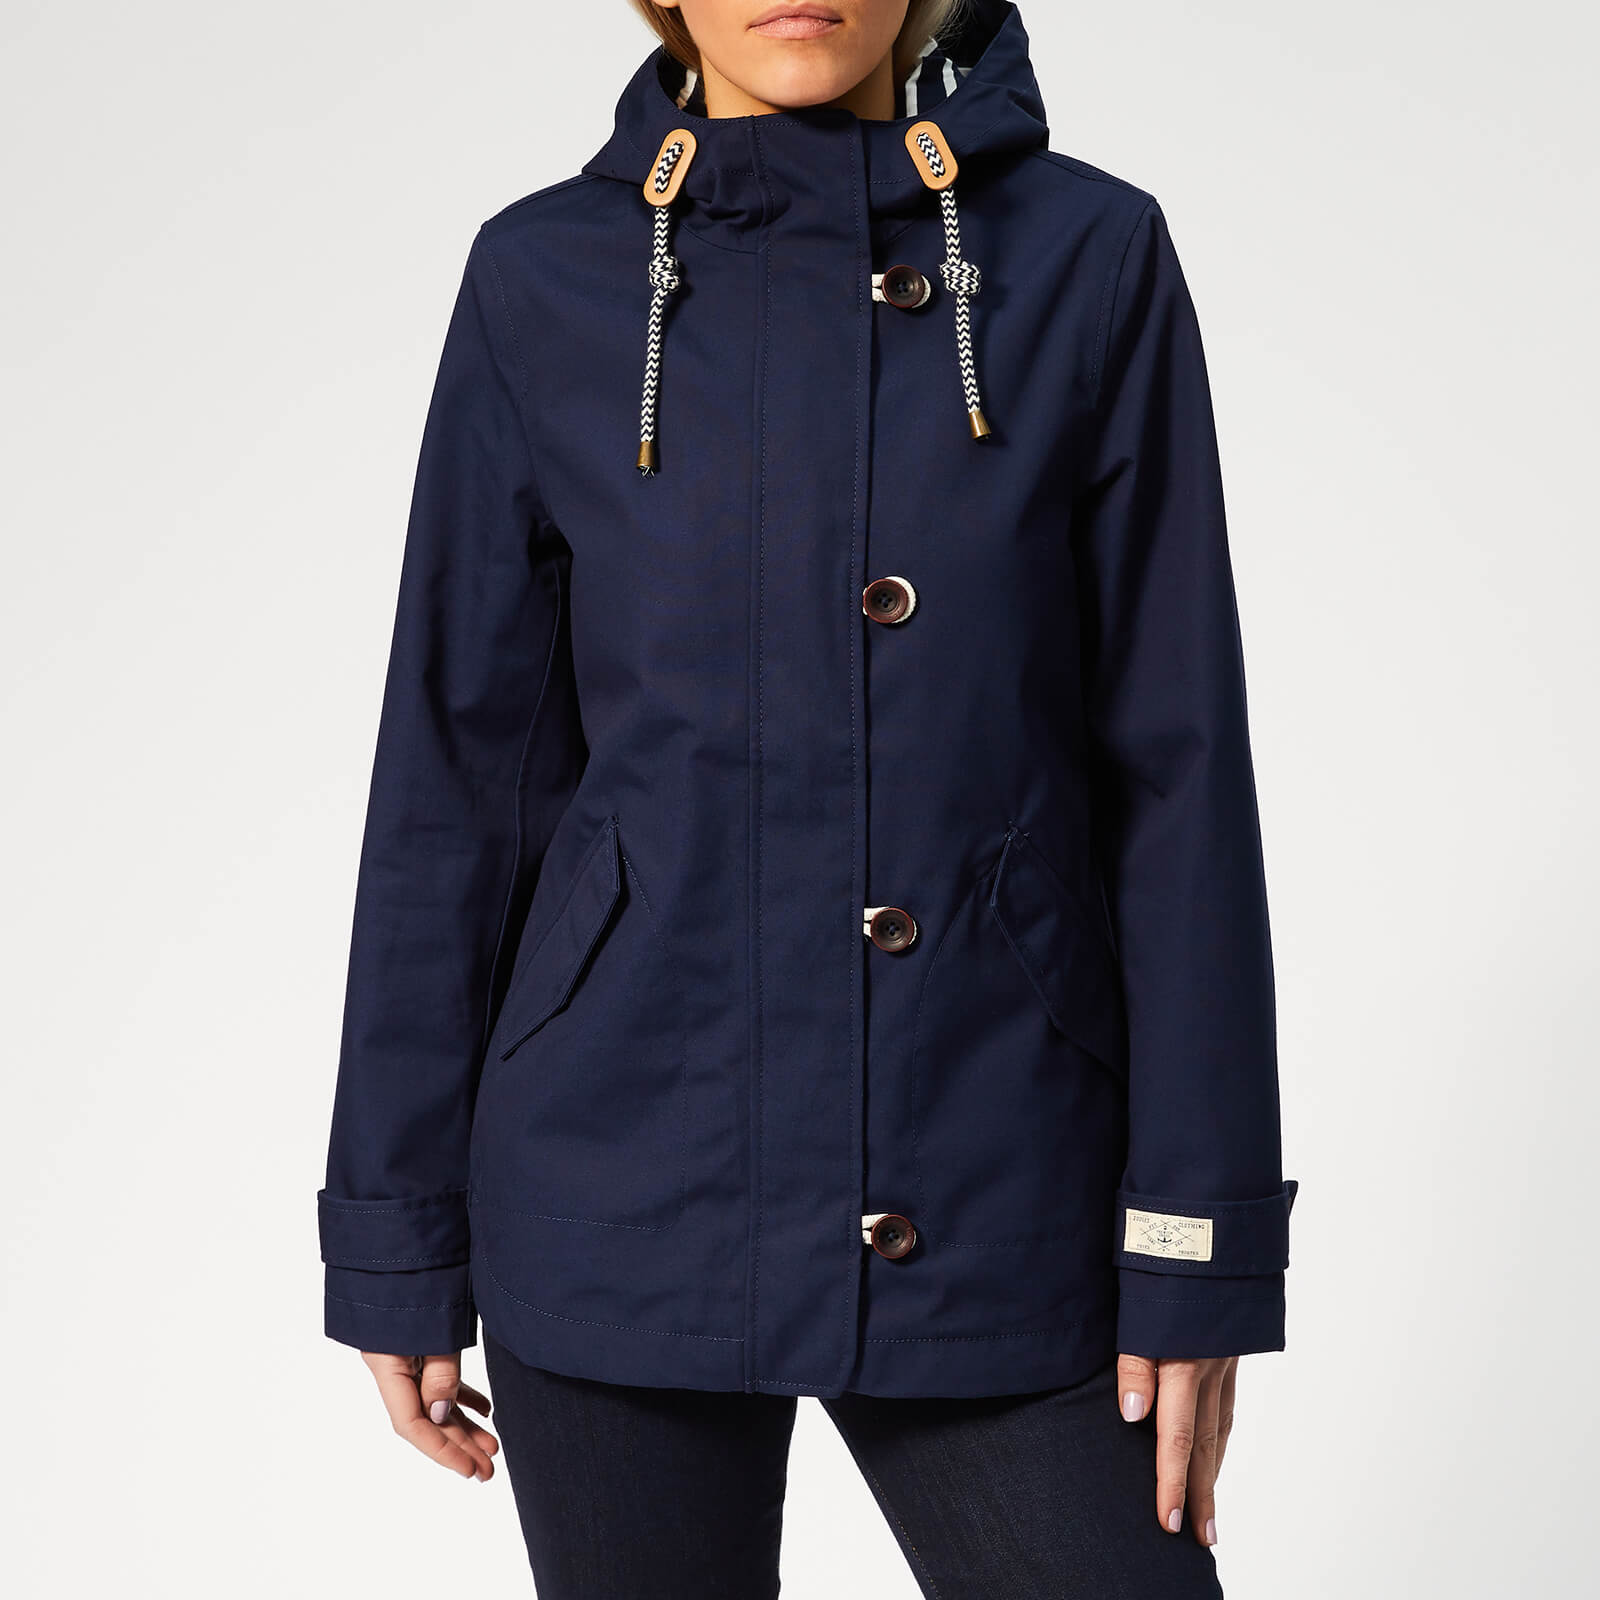 Joules Waterproof Jacket in FRENCH NAVY